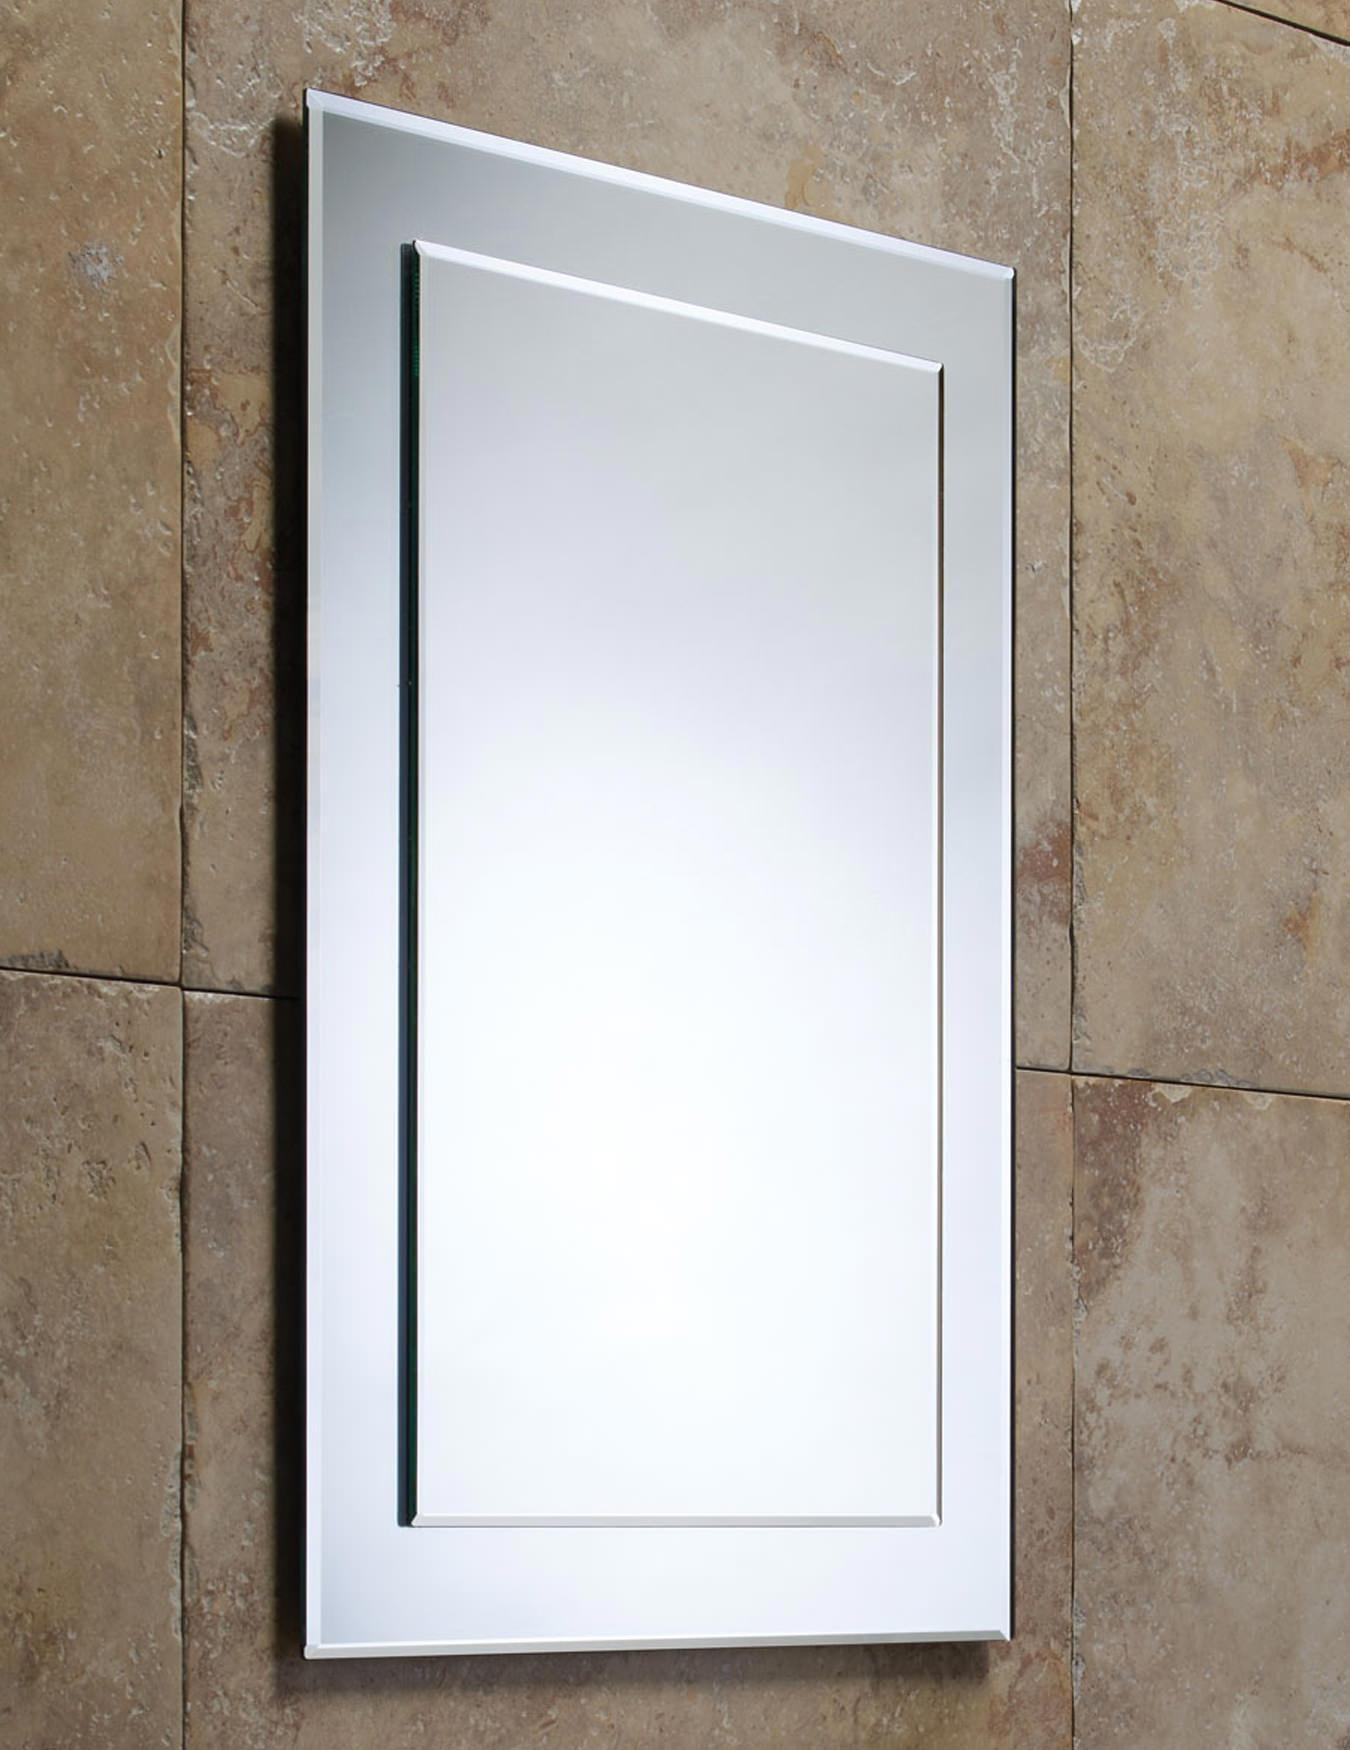 Roper Rhodes Elle Bevelled Mirror On Mirror | Mps403 In Bevelled Mirror (View 7 of 20)